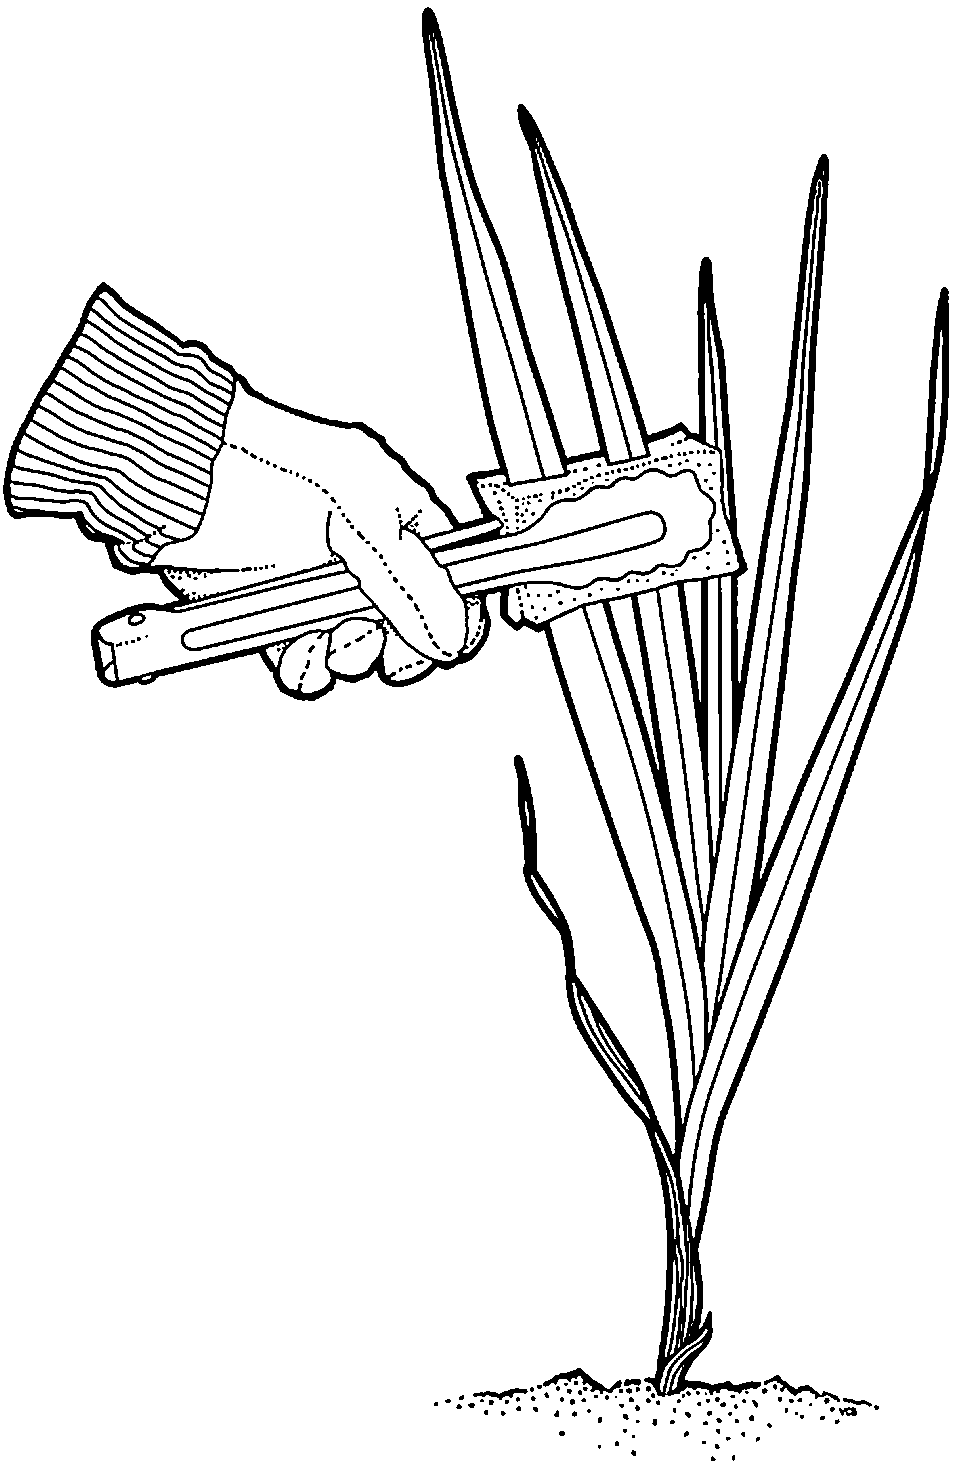 Using adapted tongs with sponge tips to swipe leaves with glyphosate